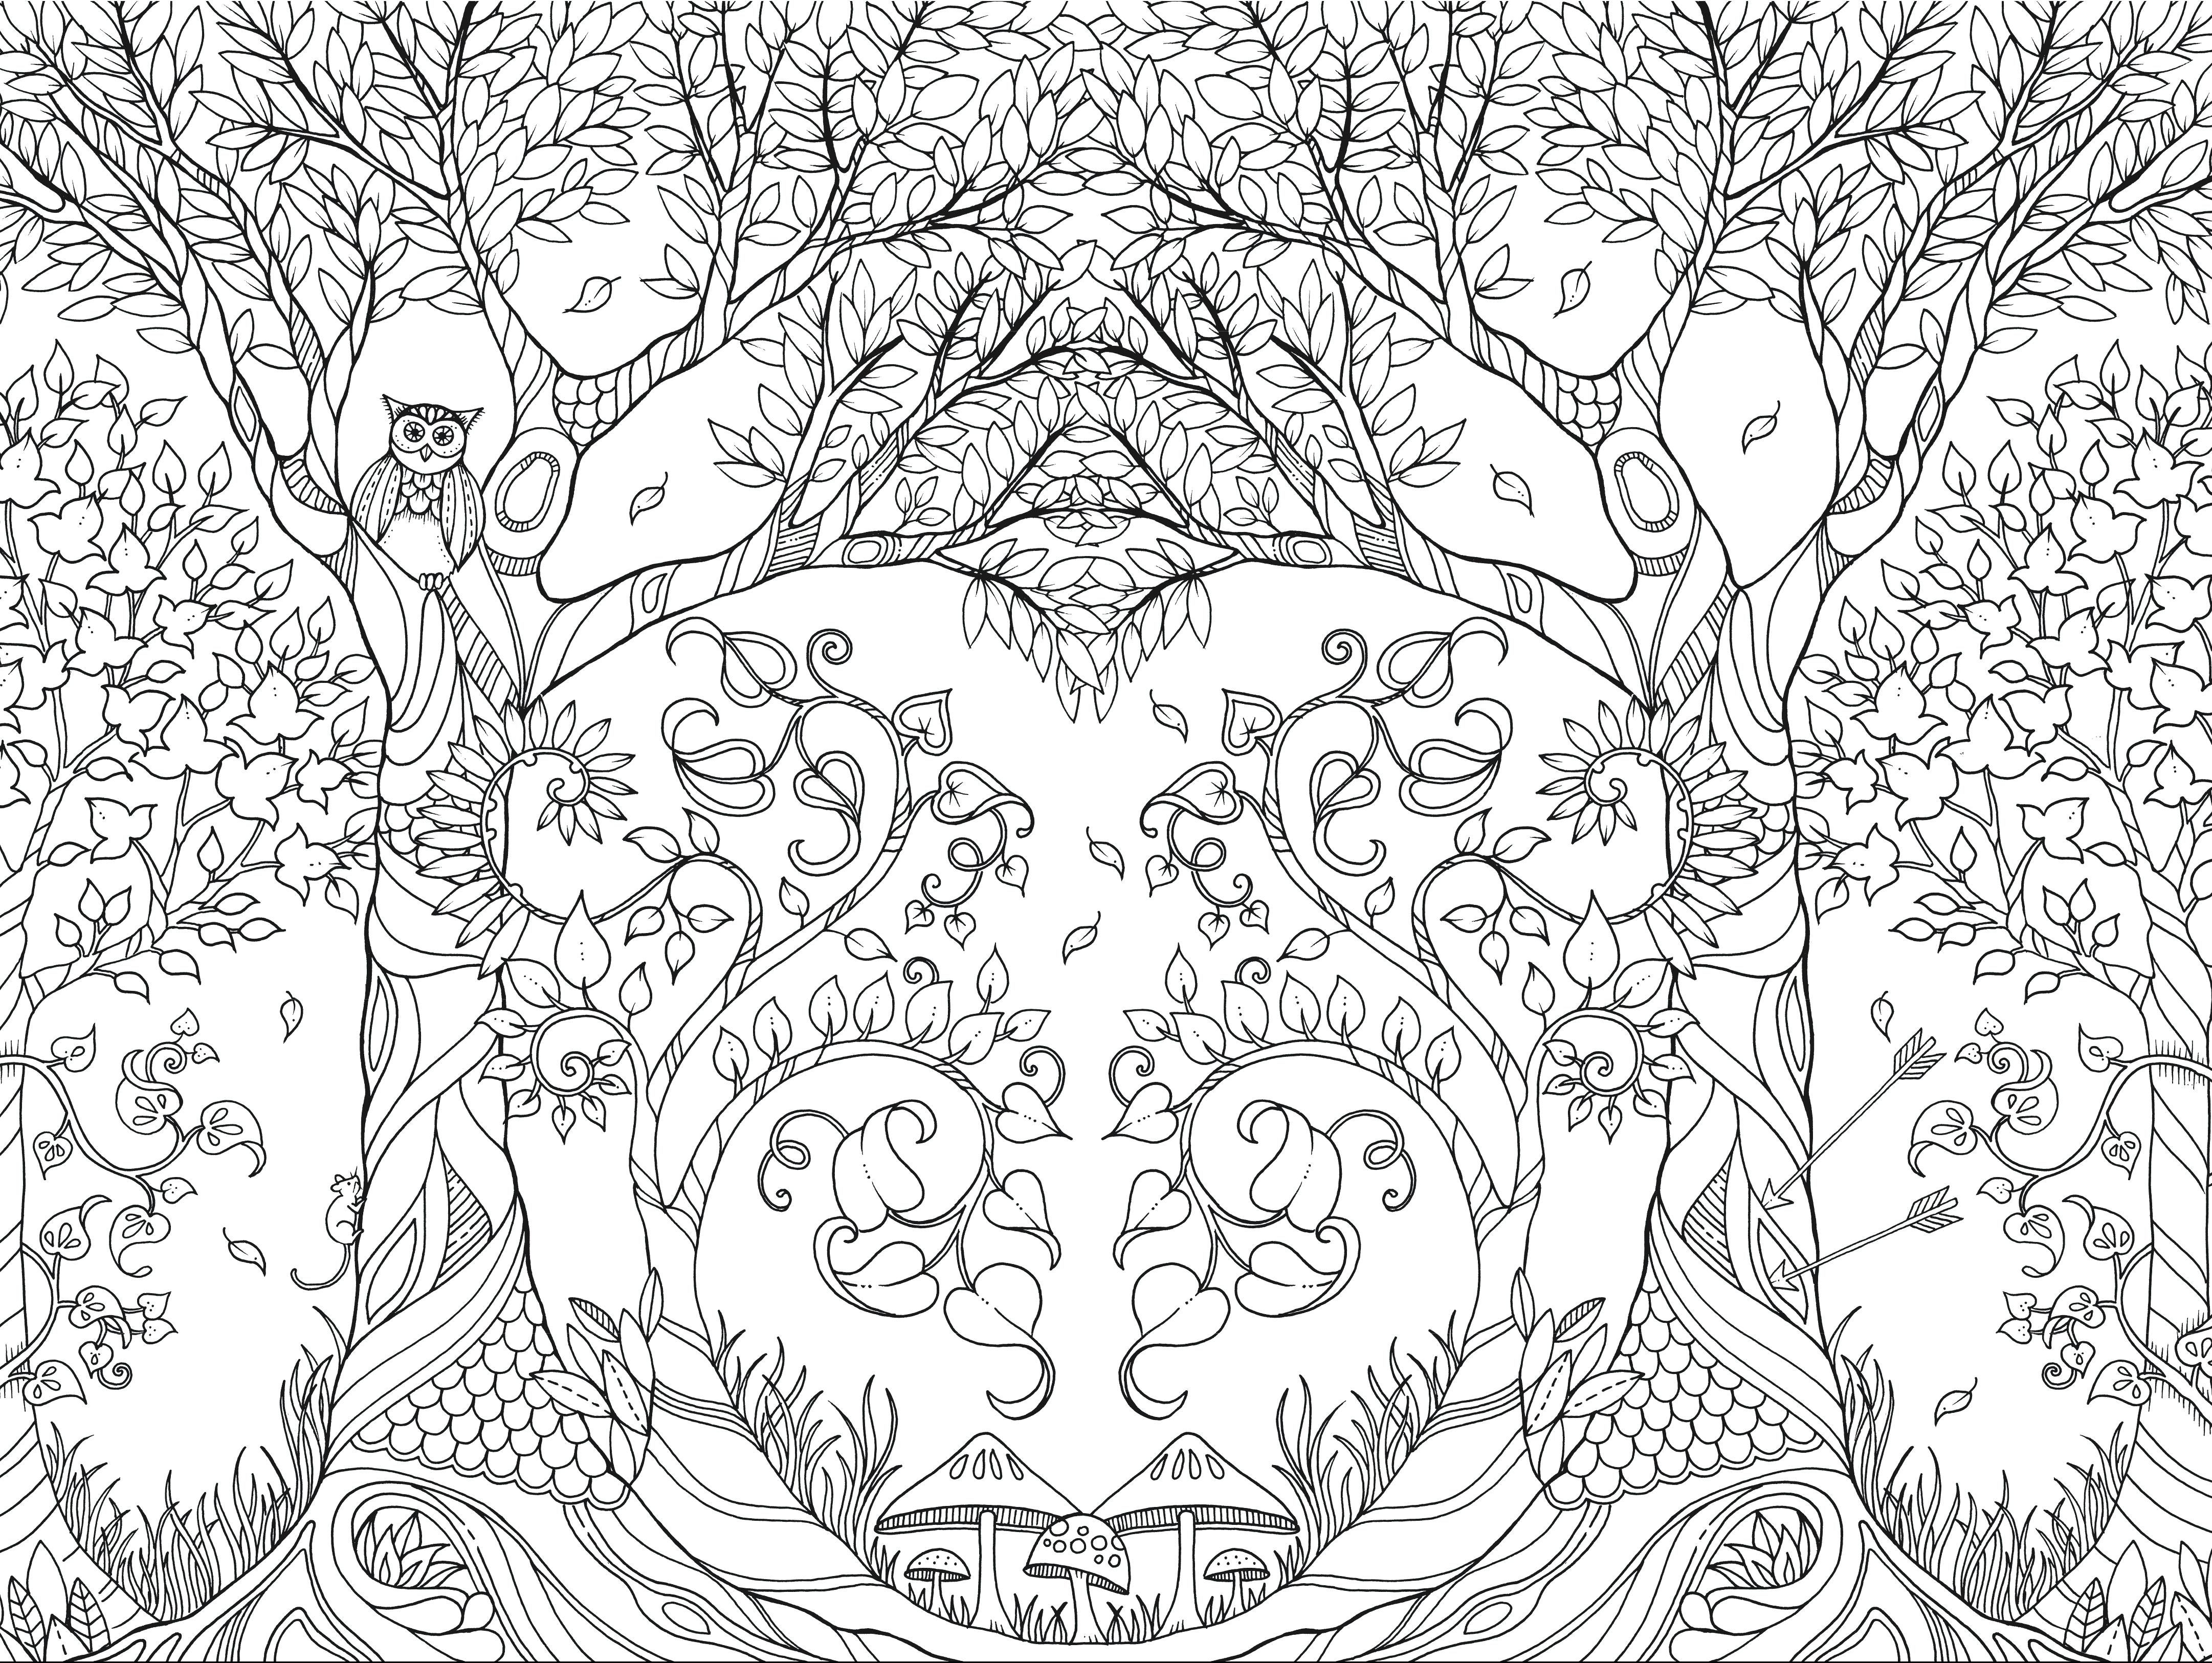 An Illustration From Coloring Book Johanna Basford Best Colouring Pencils Forest Coloring Book Enchanted Forest Coloring Enchanted Forest Coloring Book